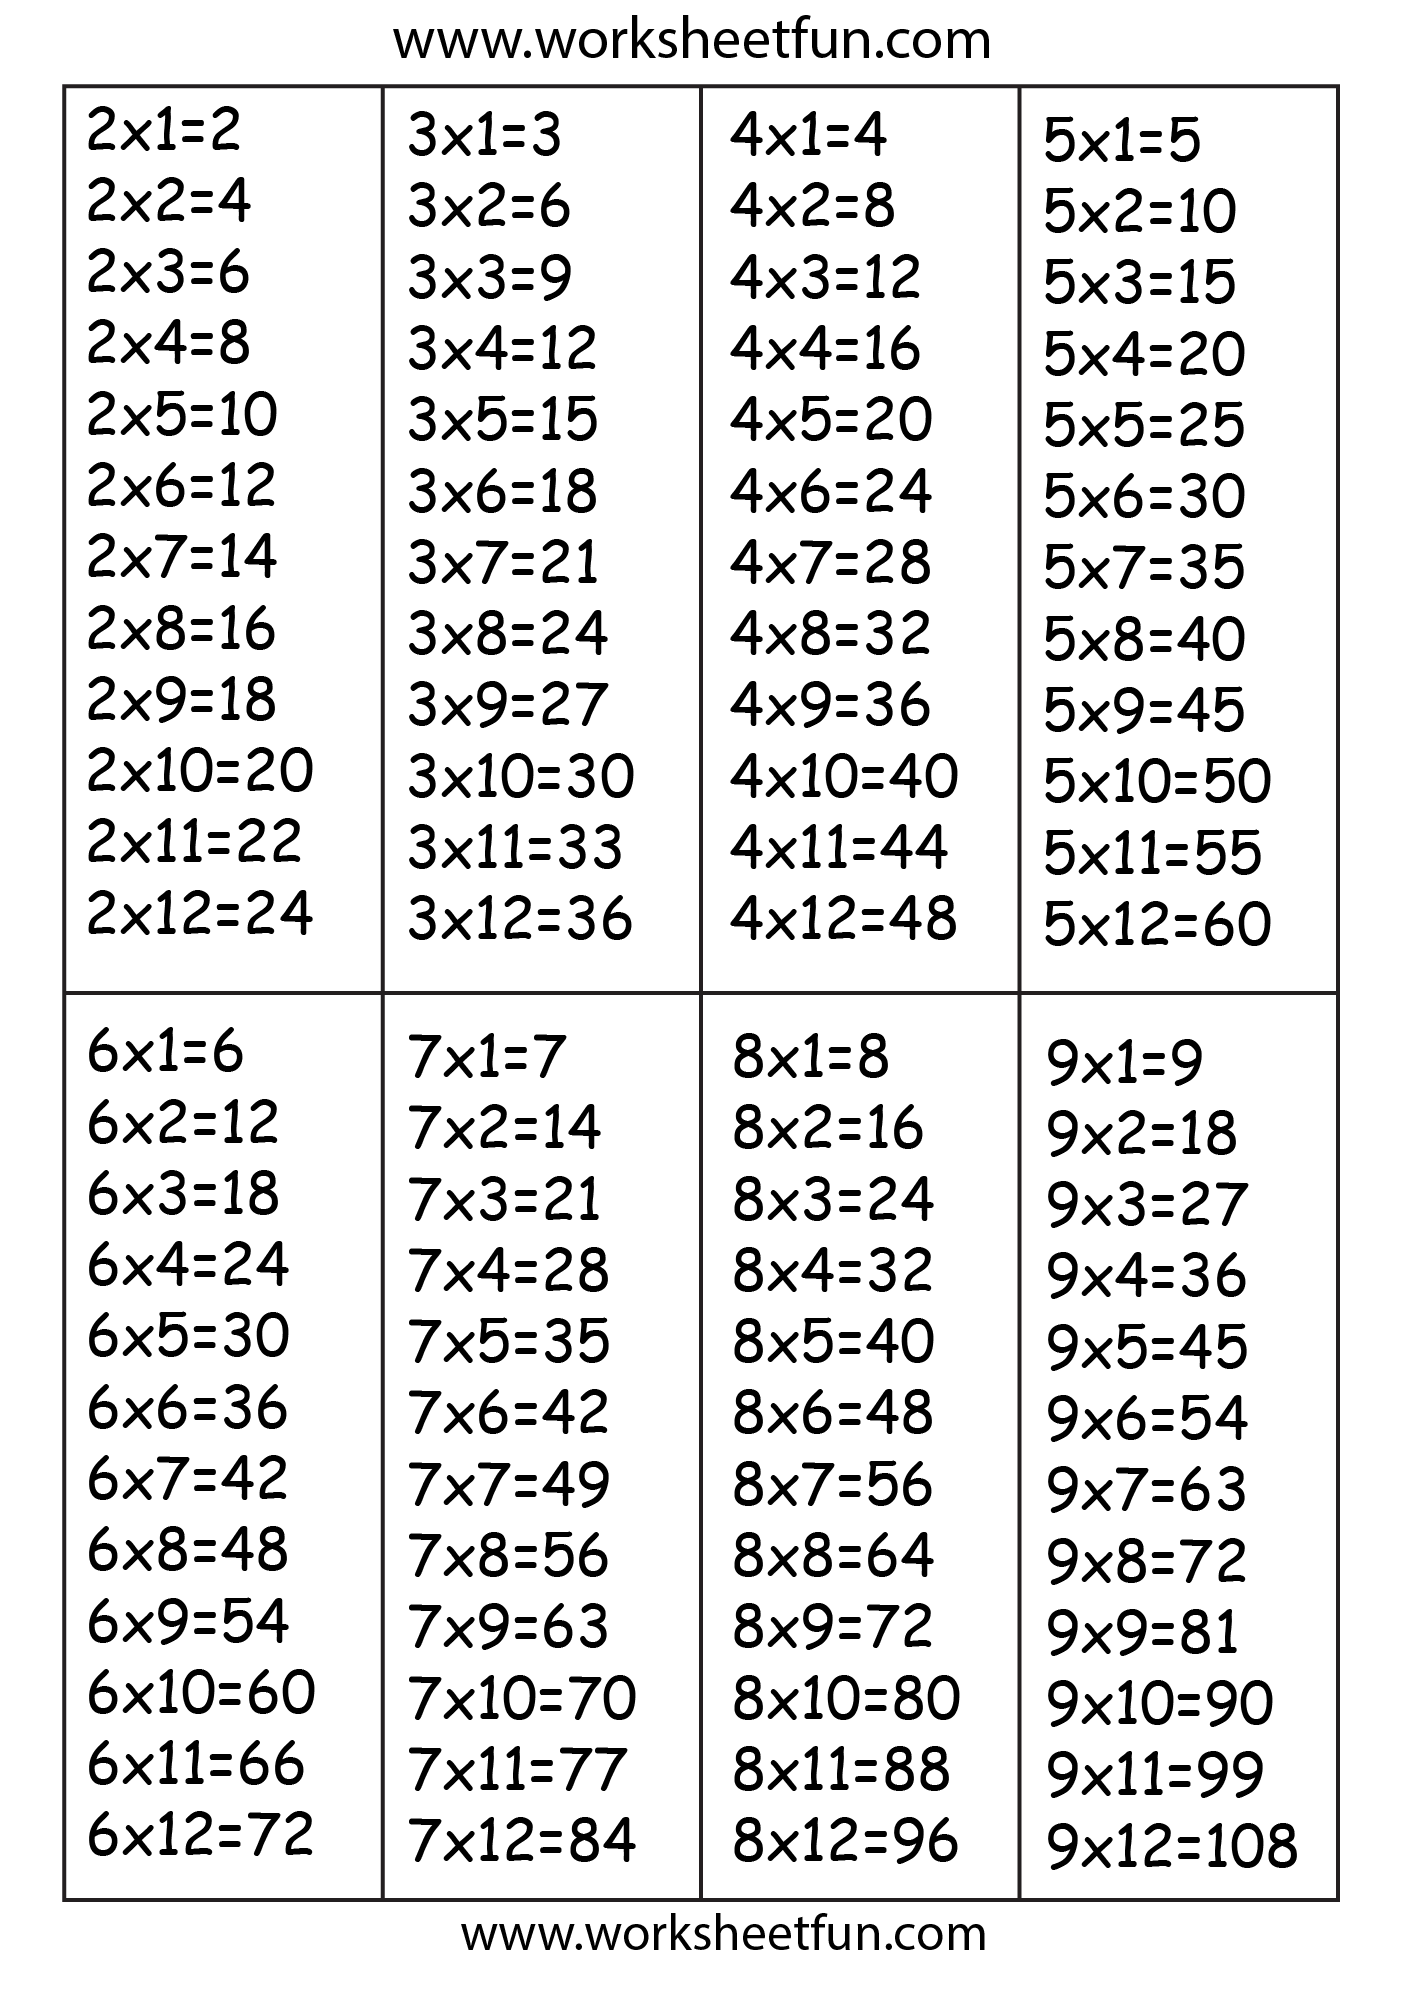 Times Tables FREE Printable Worksheets Worksheetfun – Multiplication Table Practice Worksheets